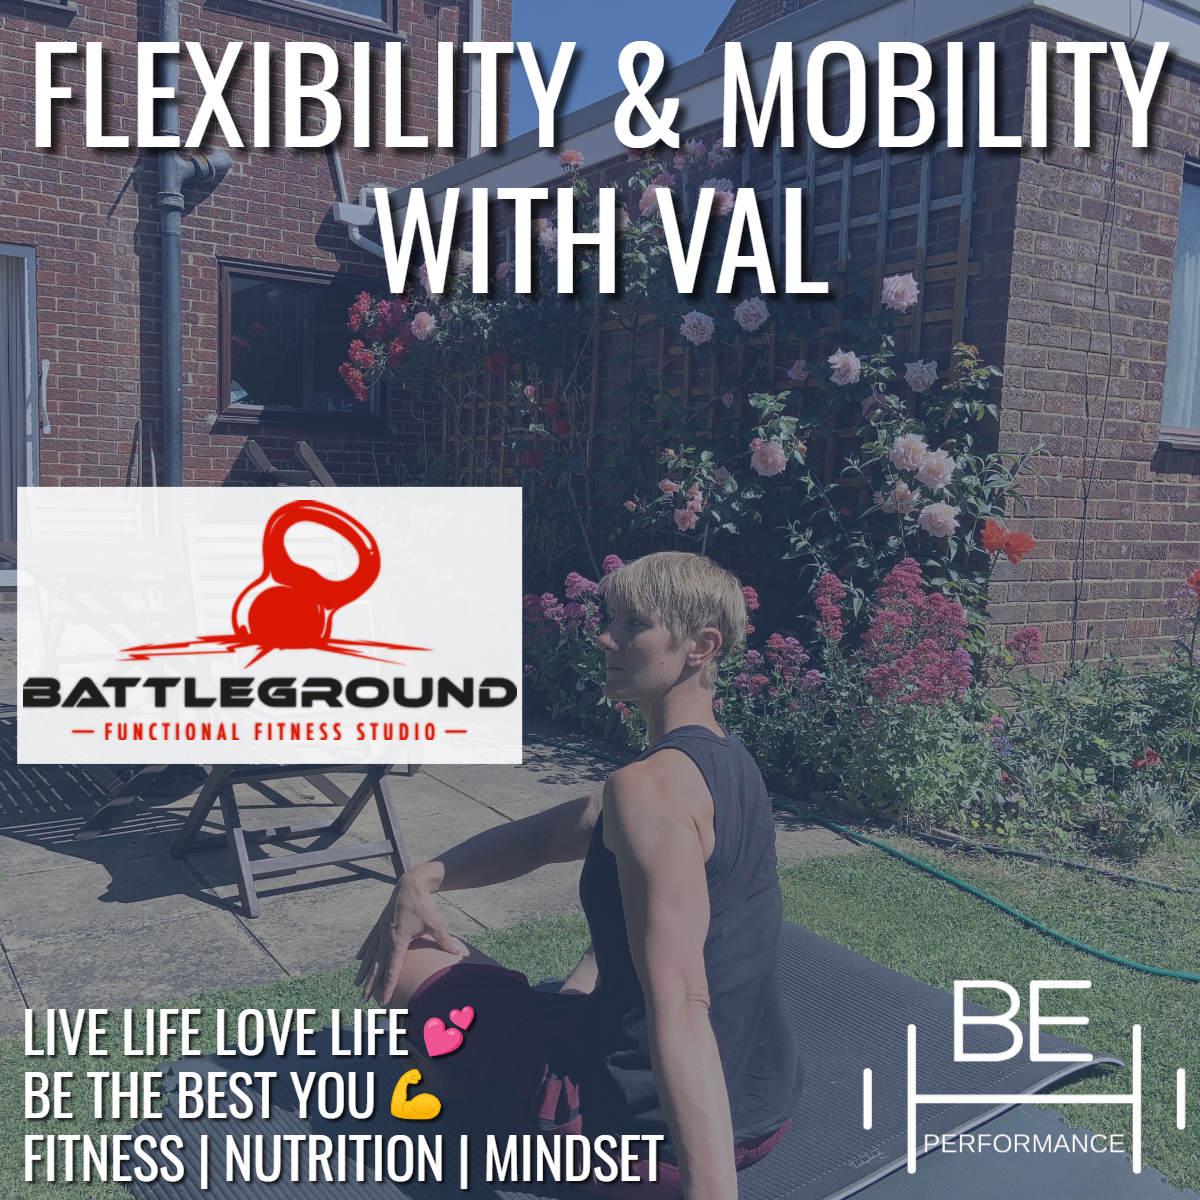 Flexibility & Mobility with Val